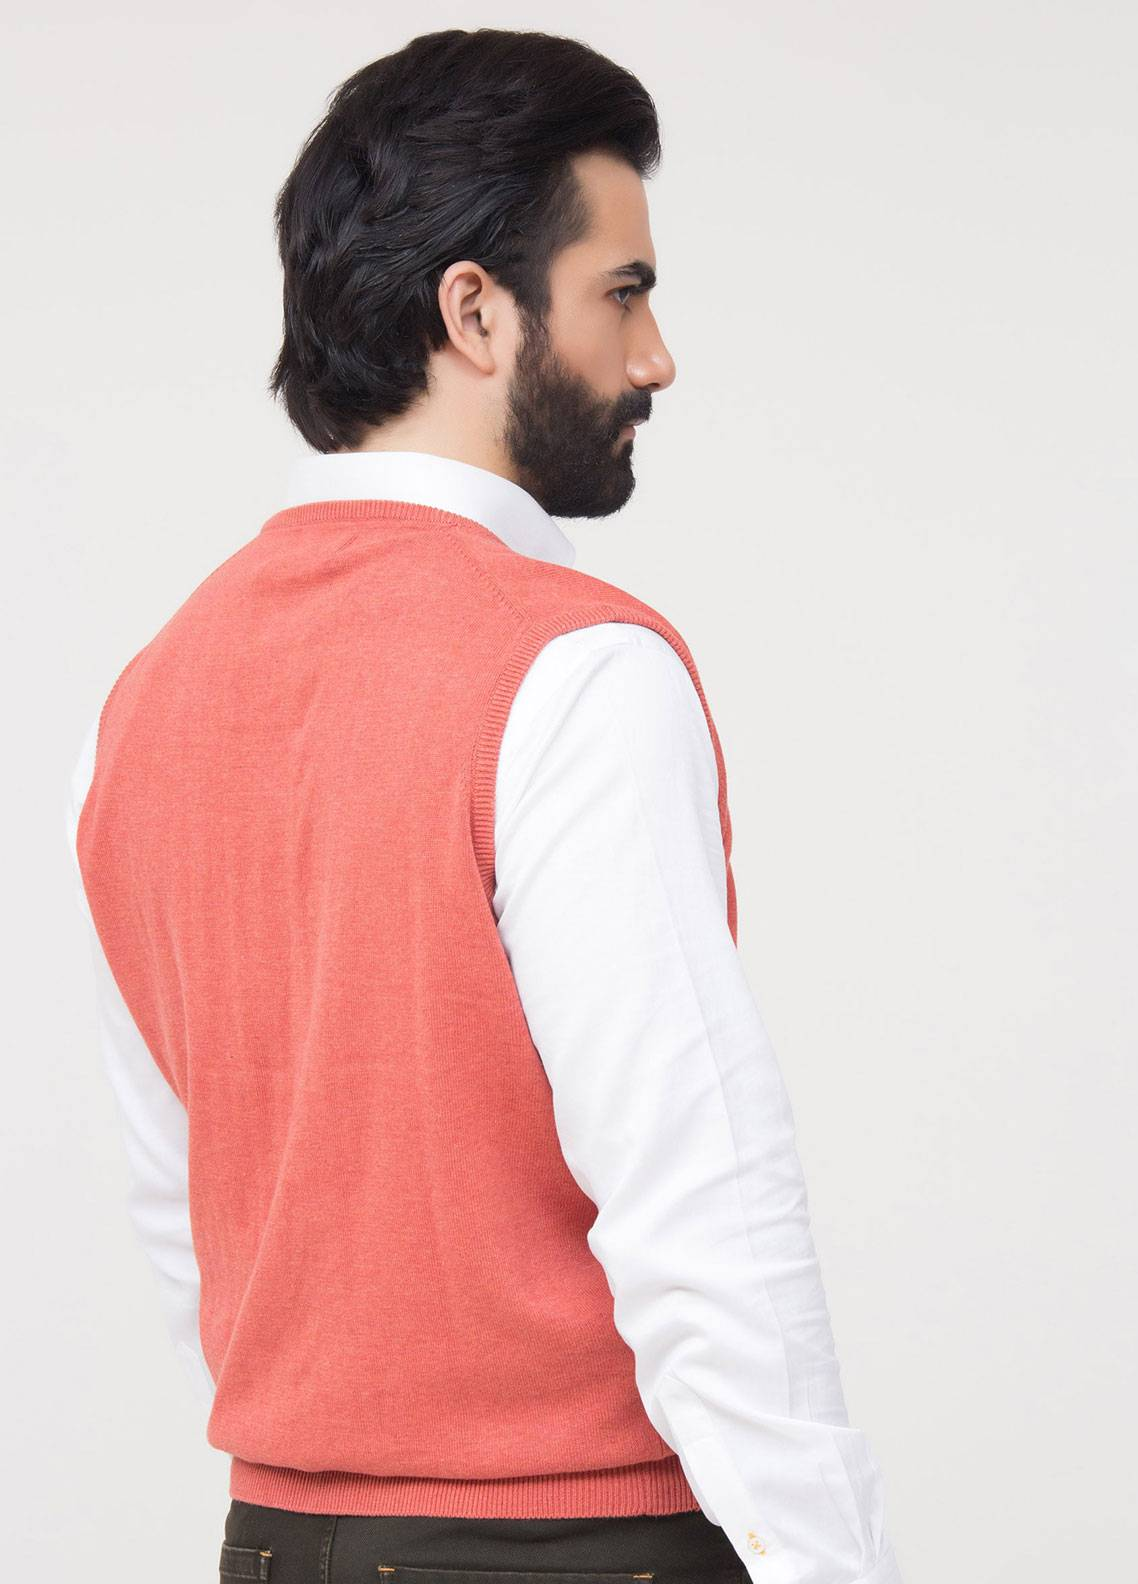 Brumano Cotton Sleeveless Men V-Neck Sweaters - Red SL-534